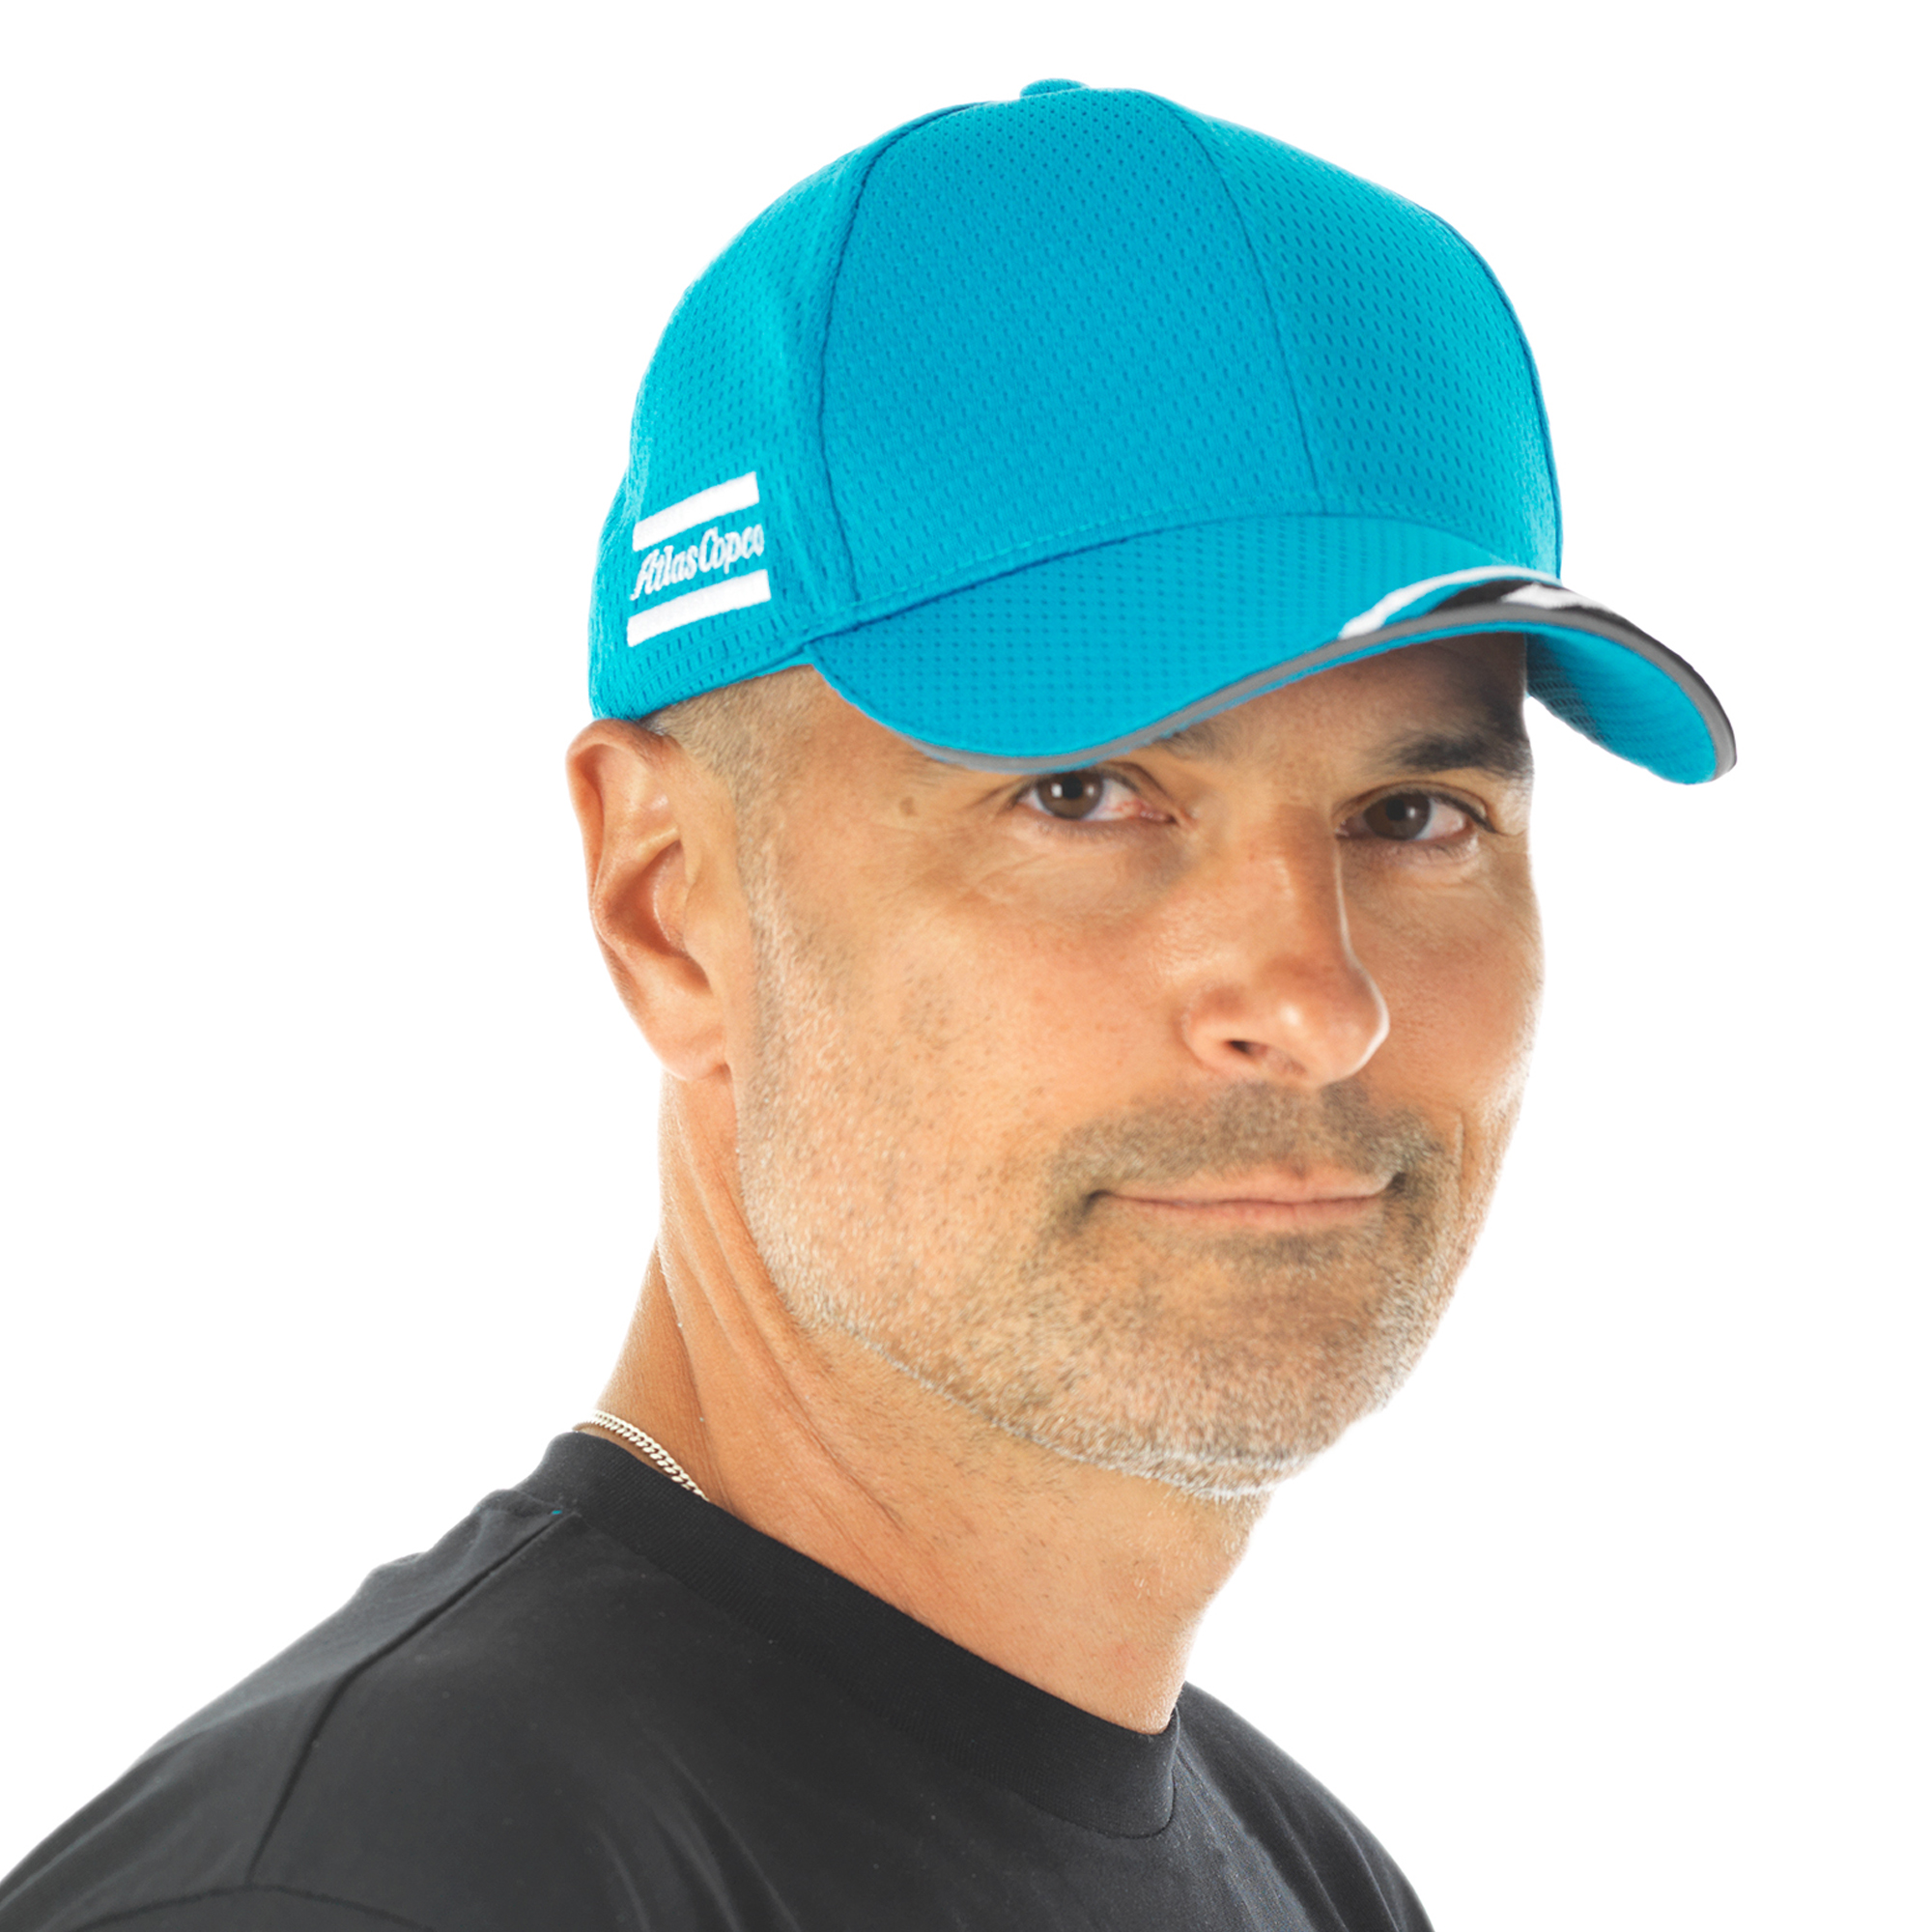 Working or exercising in warm environments demands equipment that can deal with the heat.